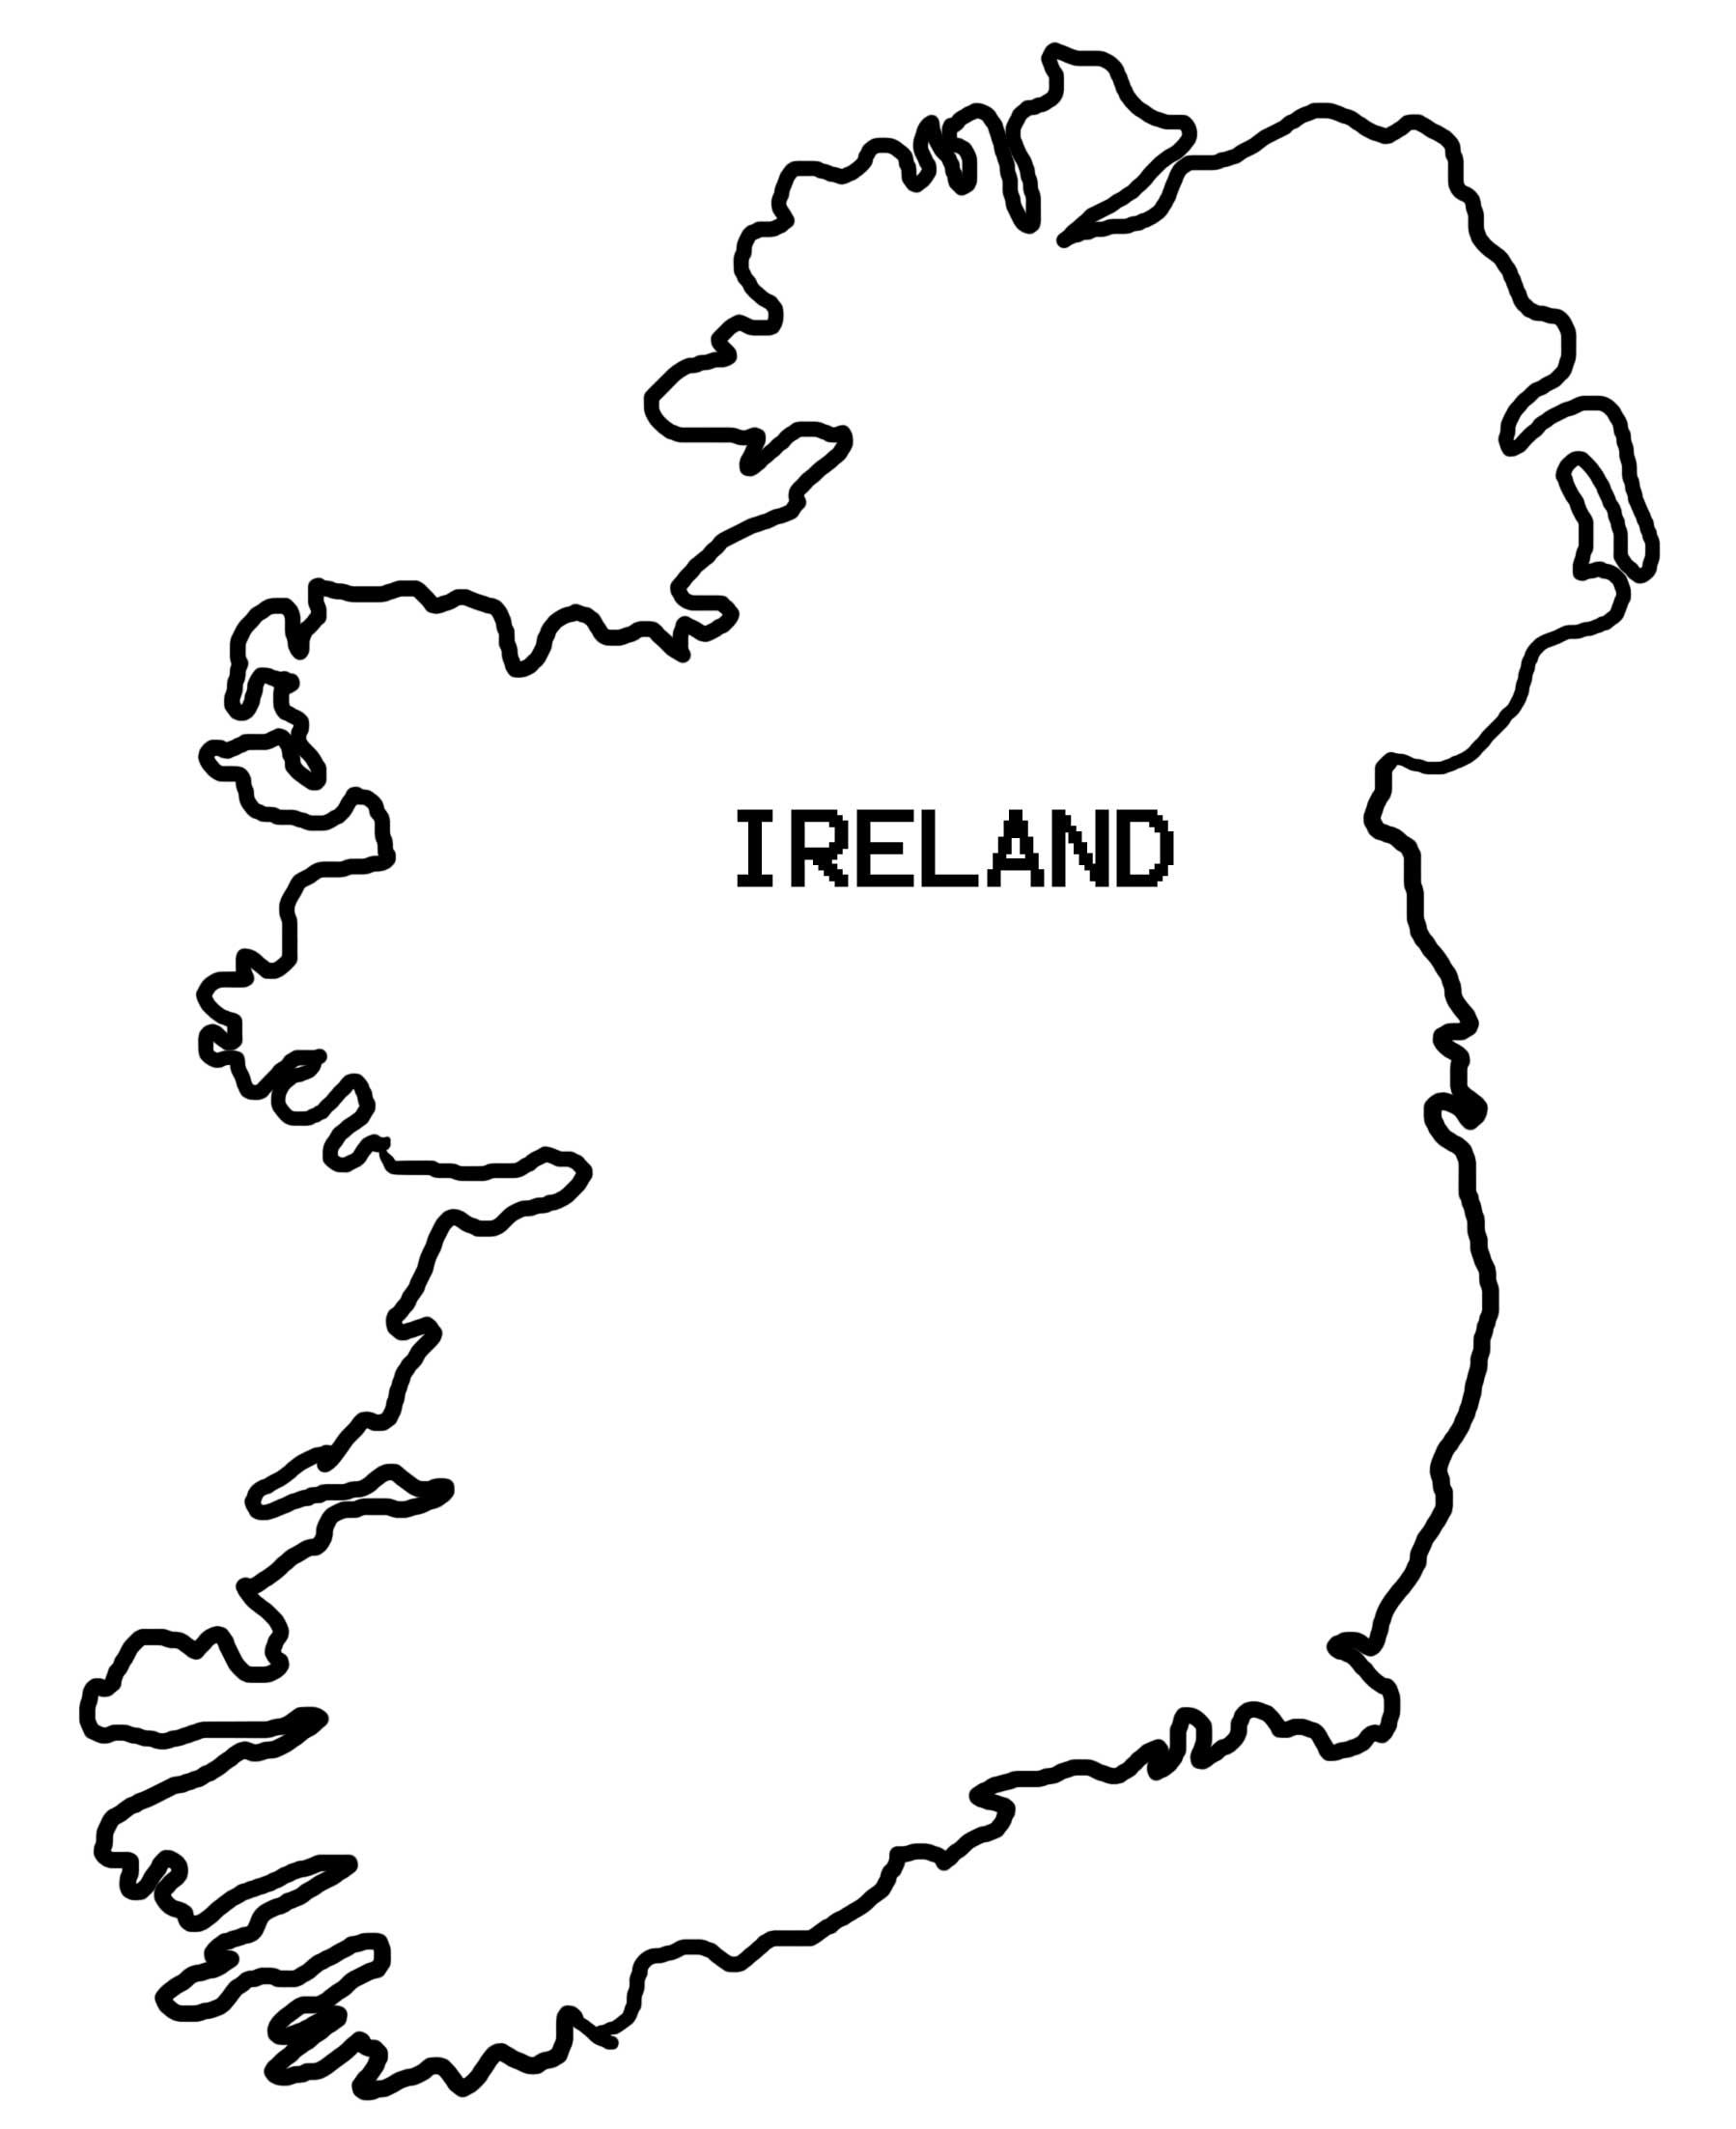 Sketch Map Of Ireland.Pin By Melissa Bly On Craft Ideas Ireland Map France Map Map Outline